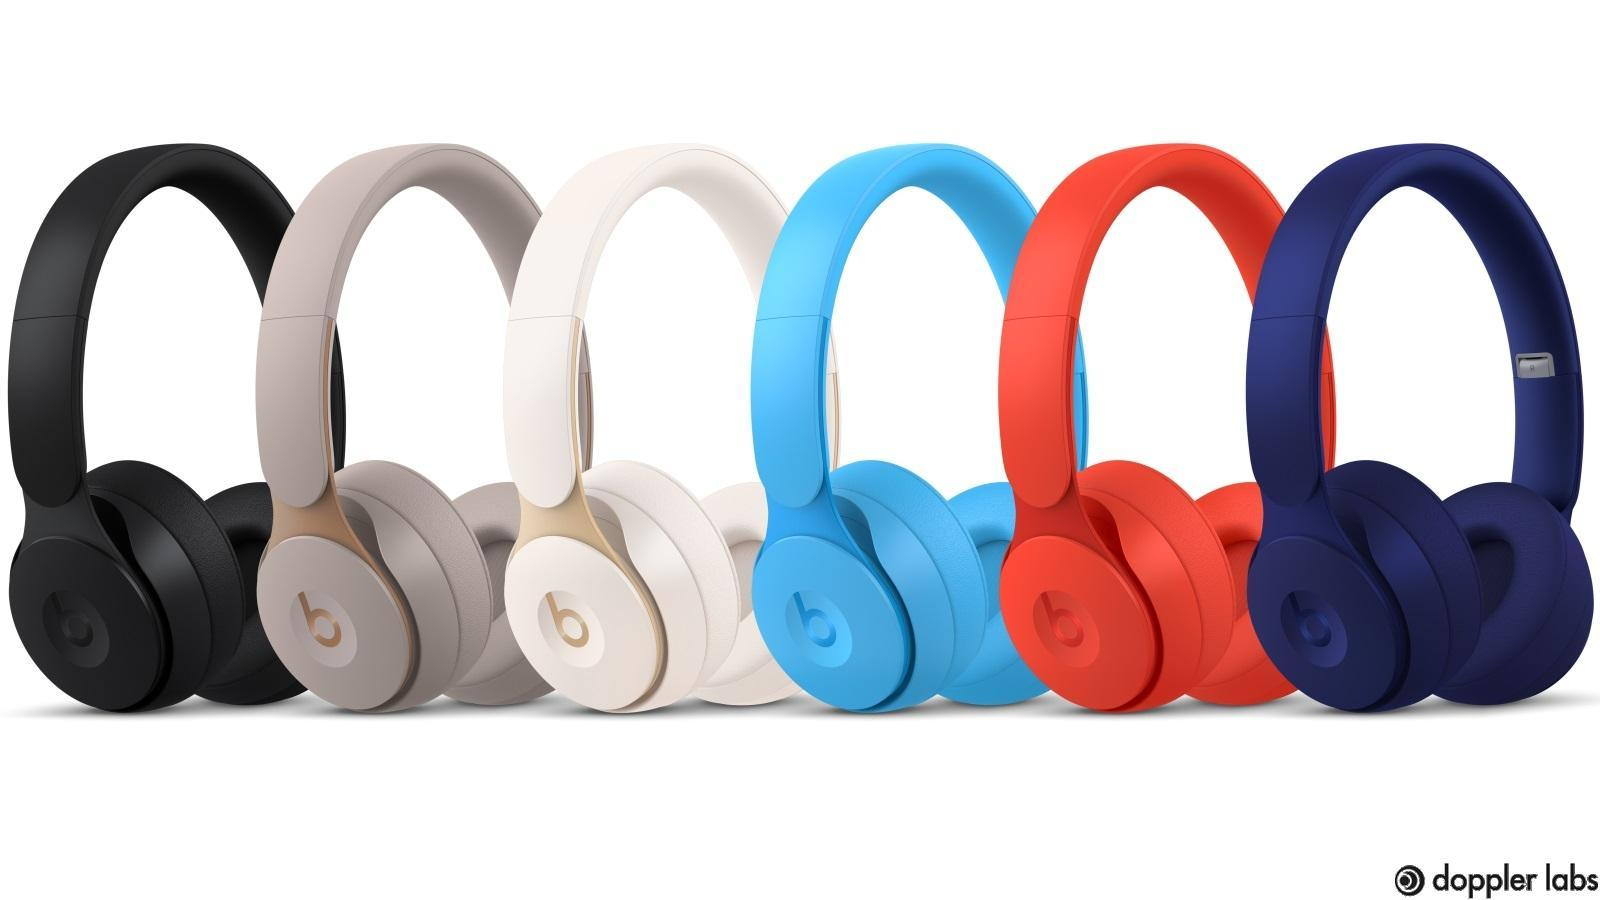 Beats Solo Pro is available in multiple colors